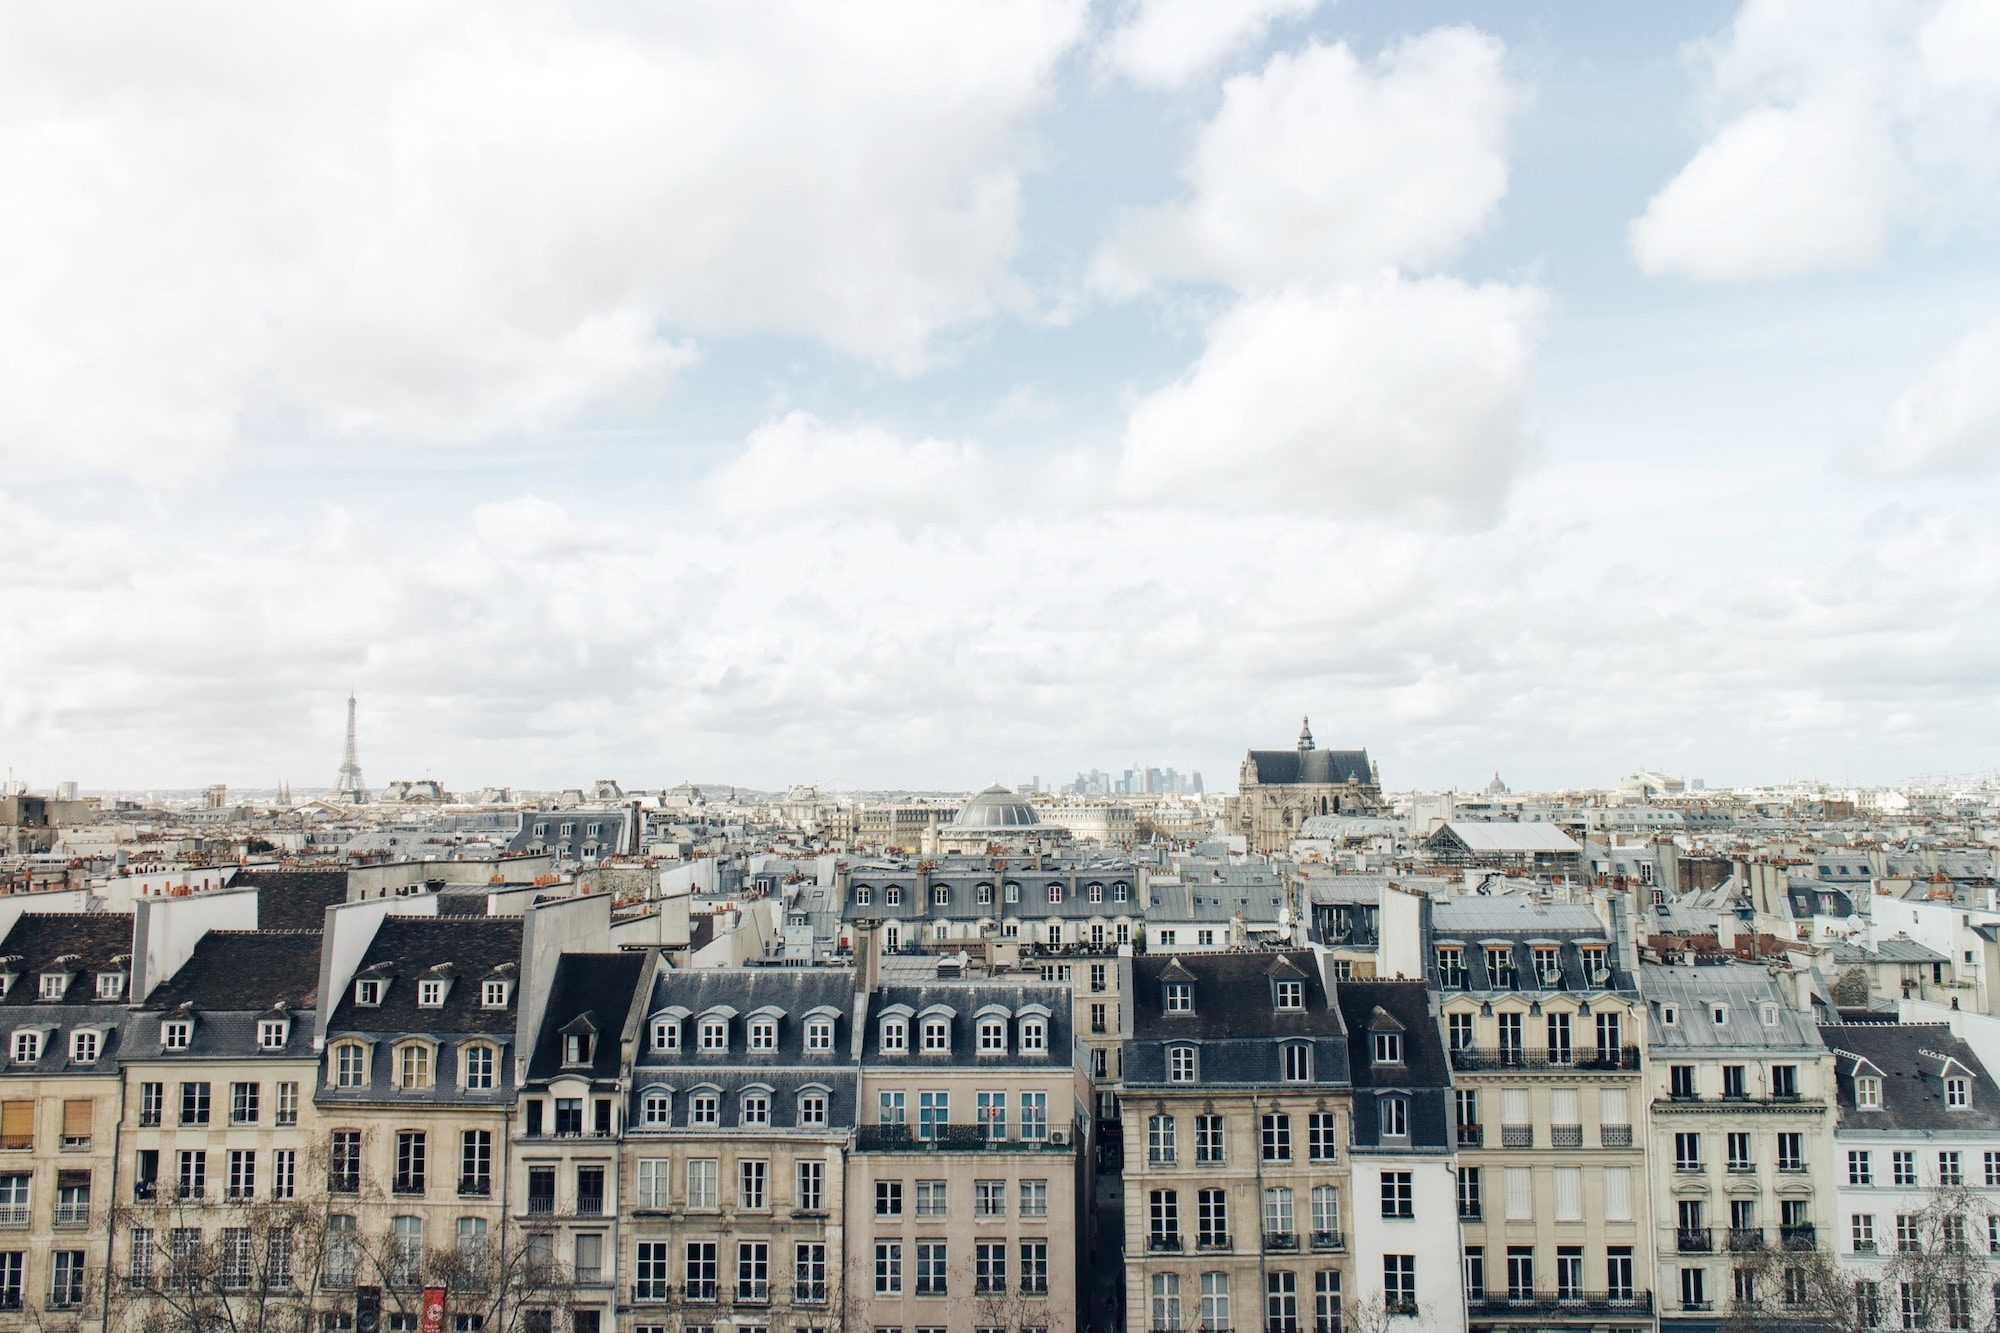 The view of Paris' beautiful architecture from the Centre Pompidou.